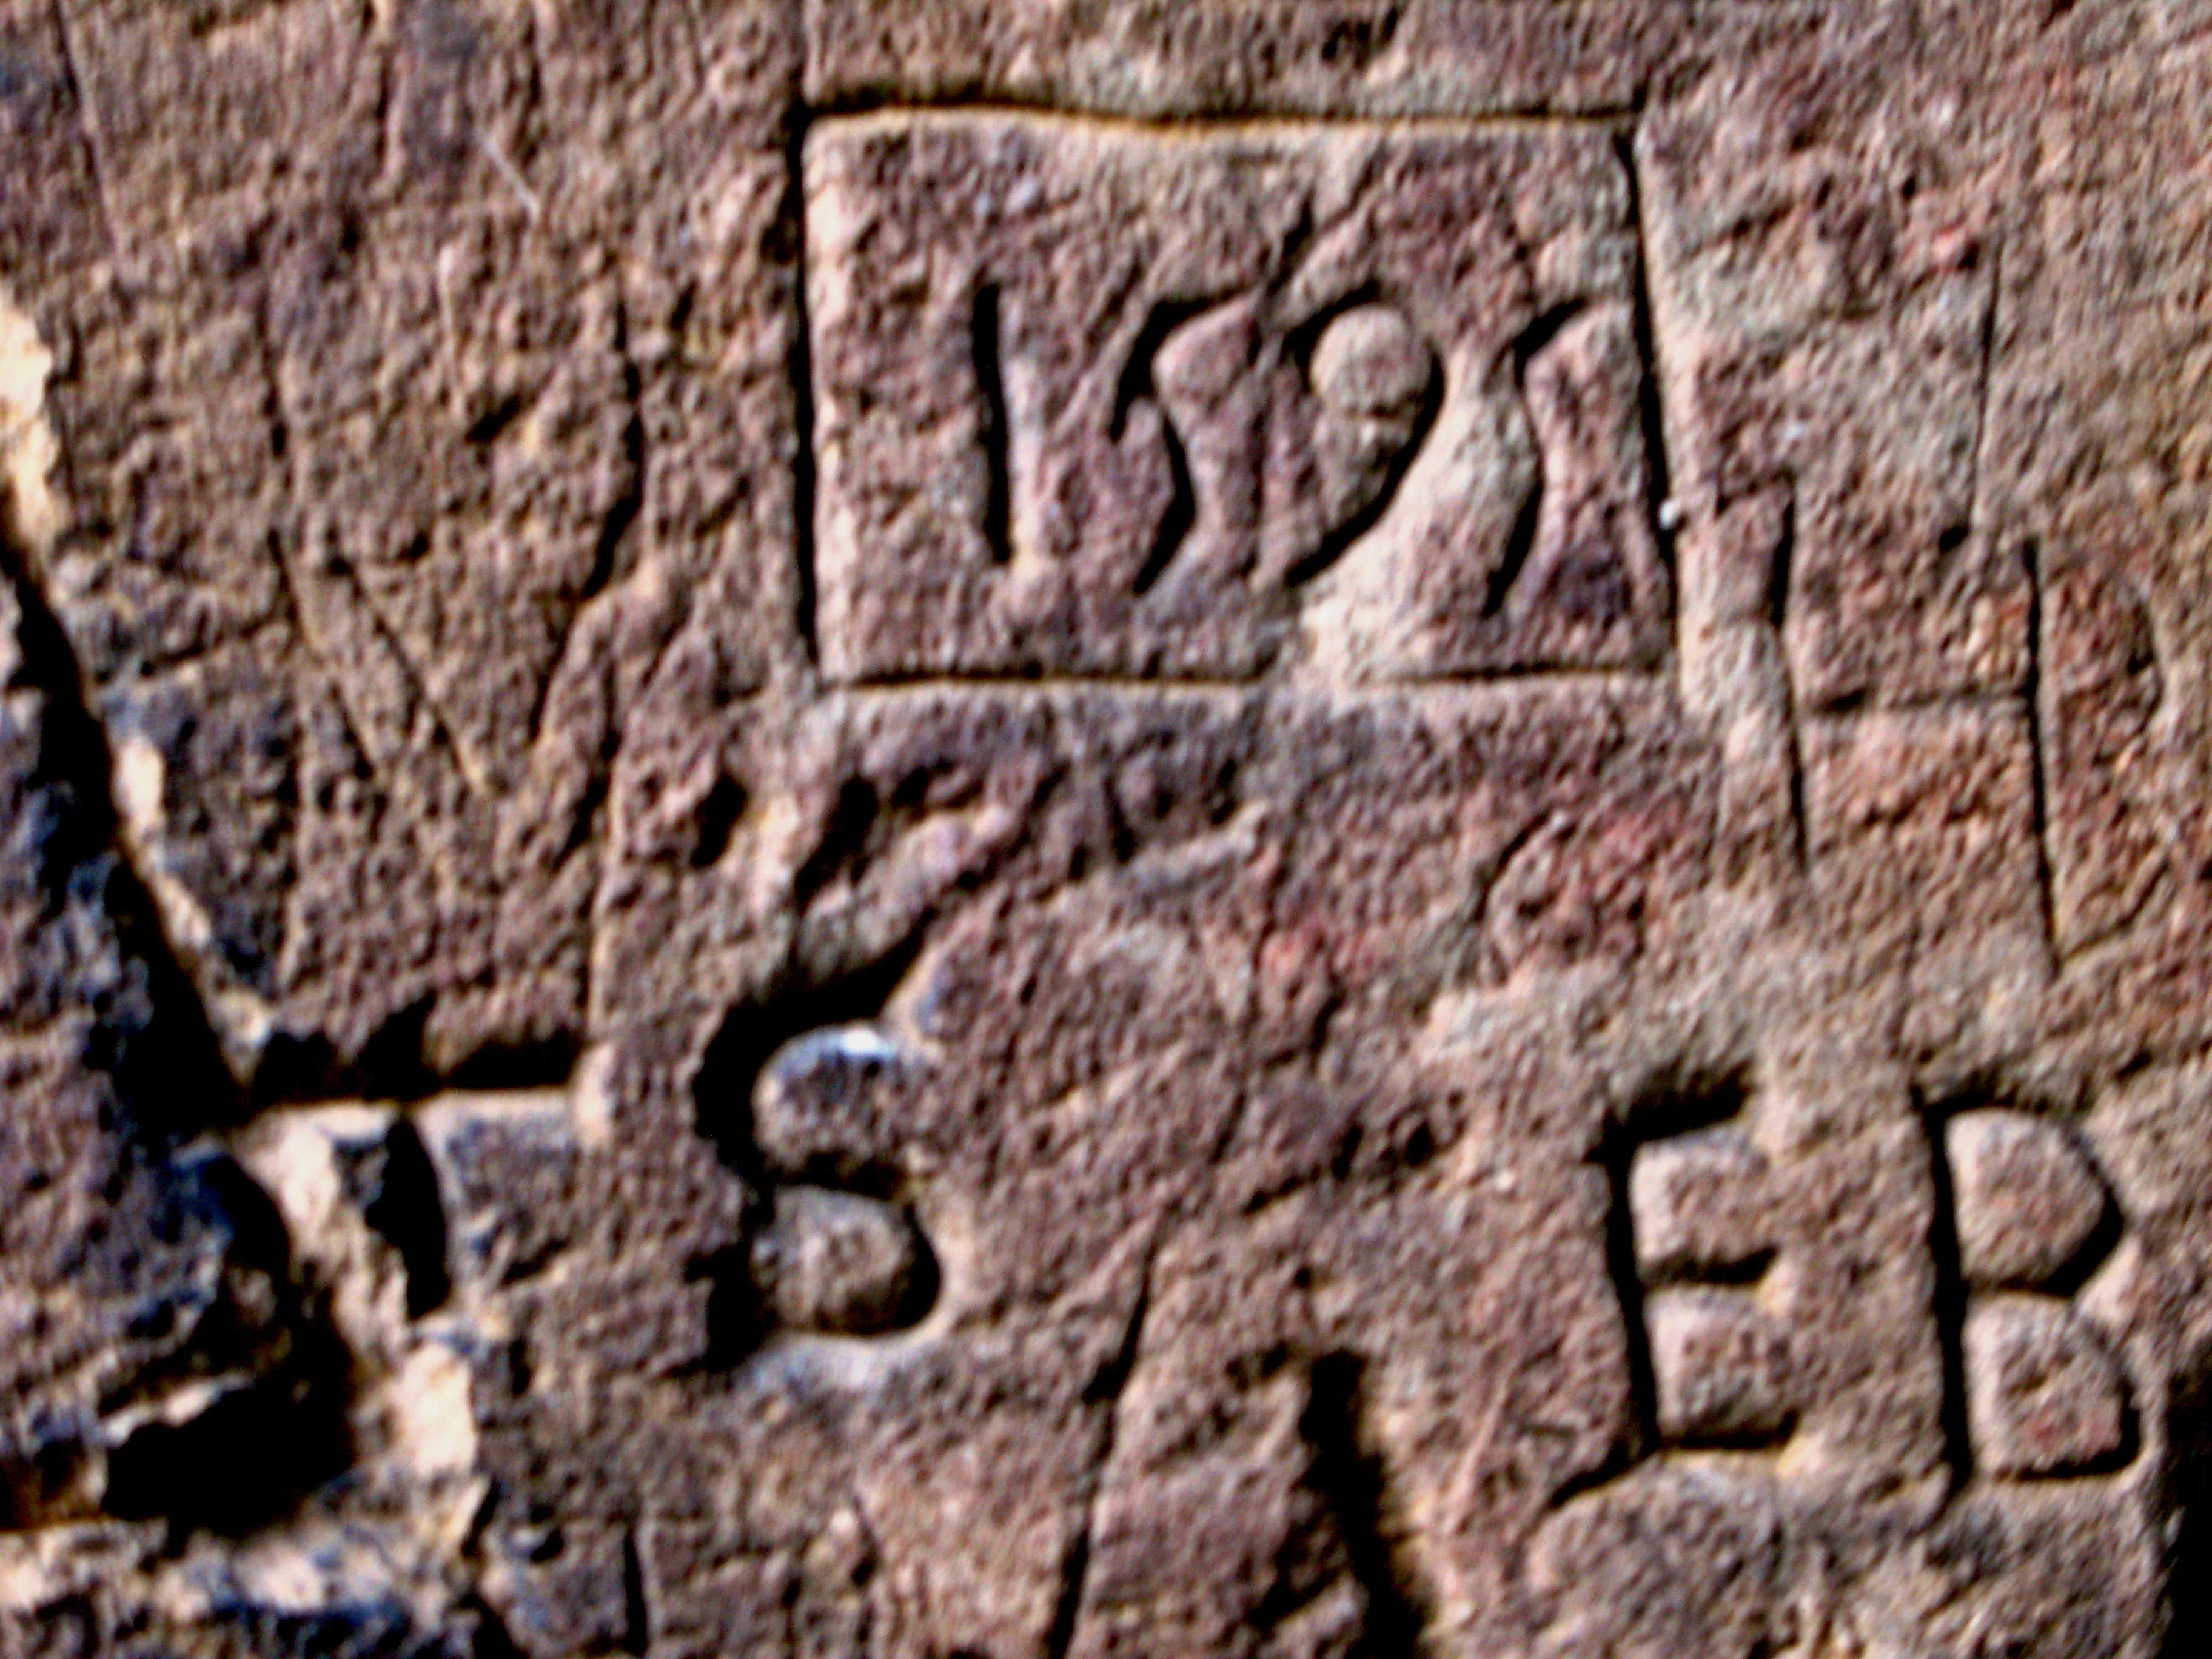 The date fifteen ninety five carved into stone surrounded by carvings of other letters and numbers